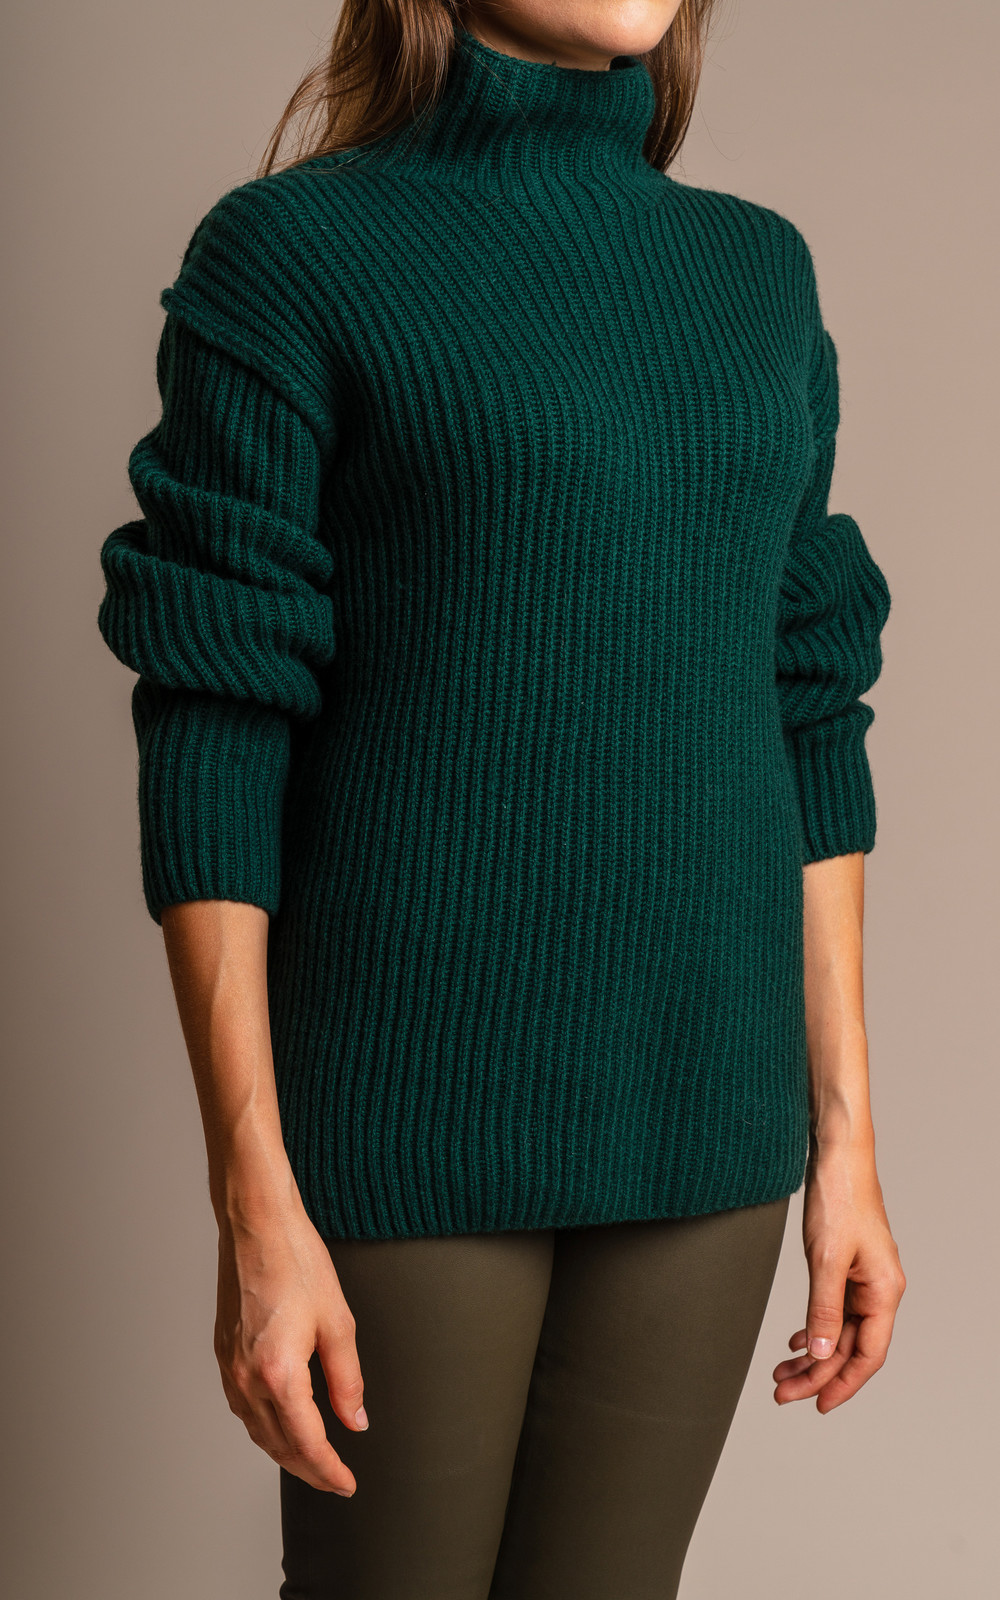 Tory Burch Oversized turtleneck